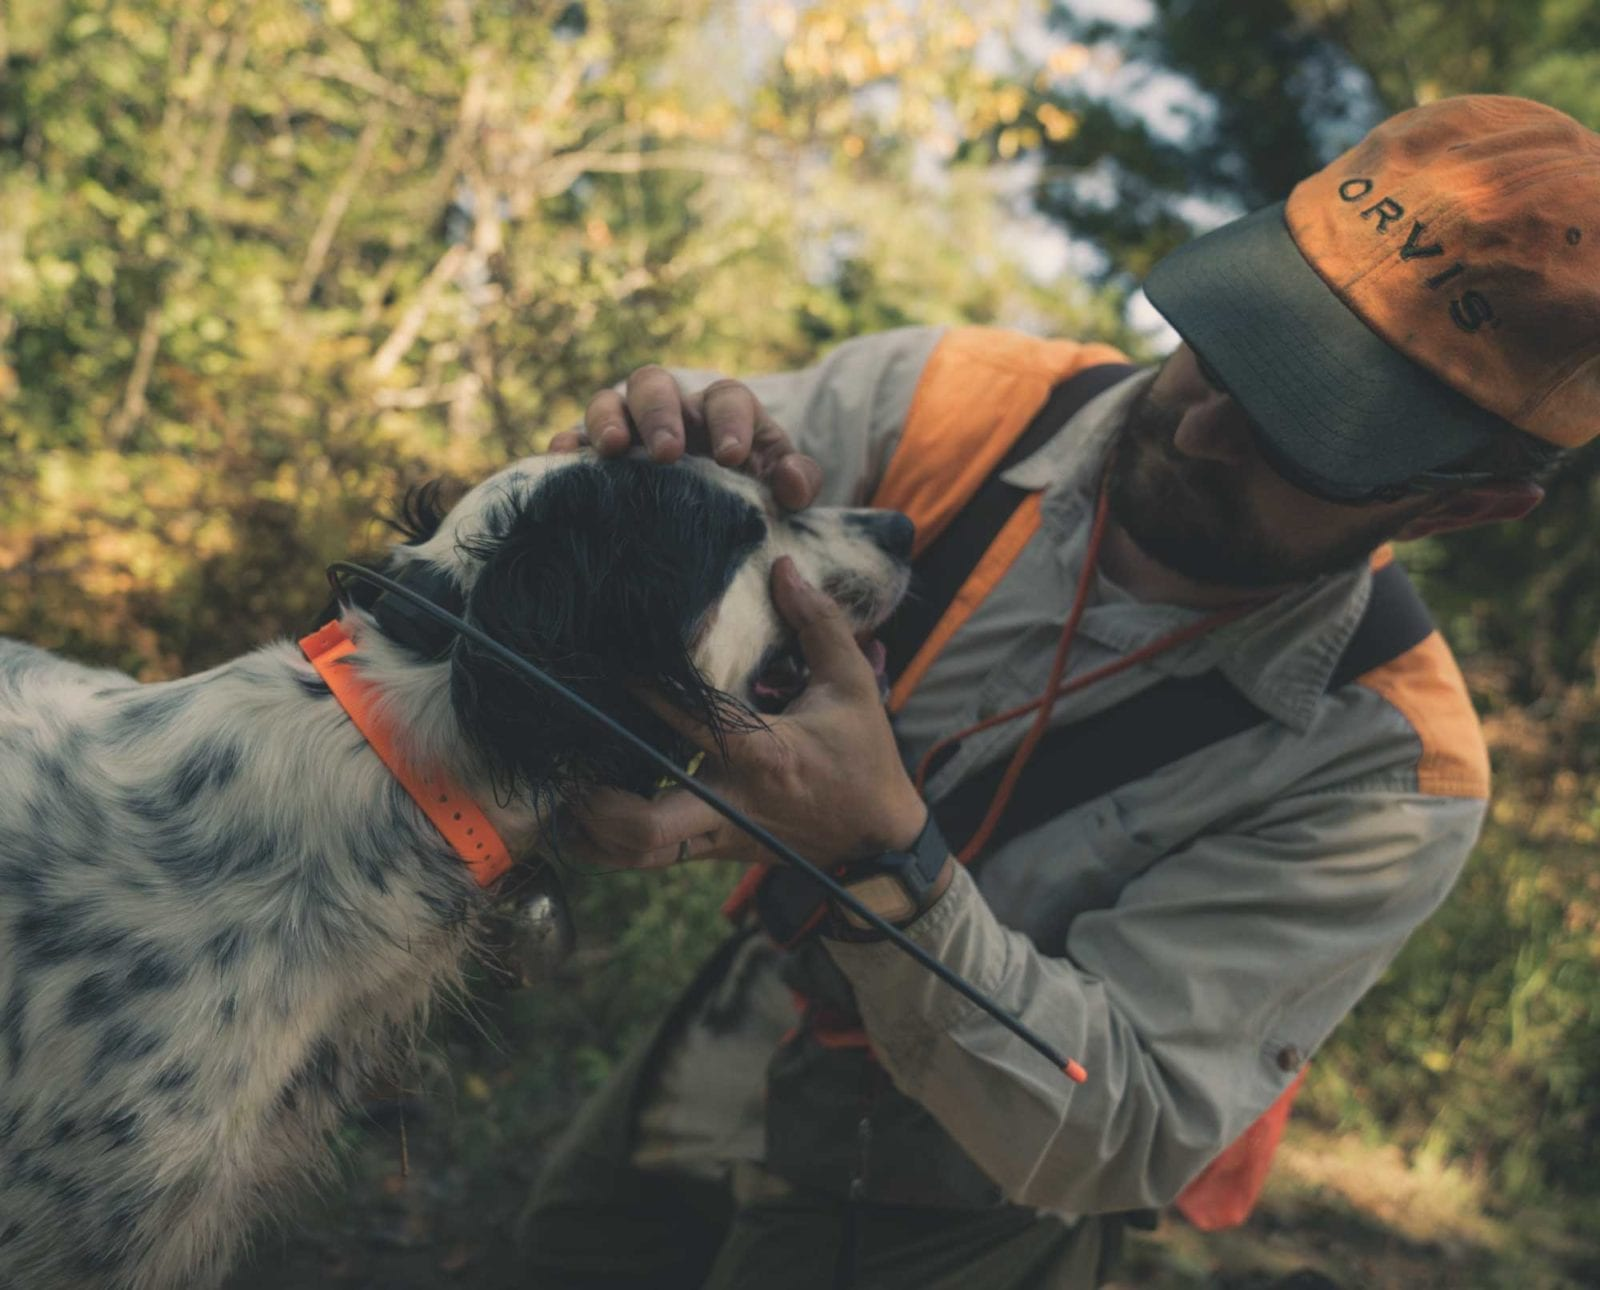 a bird hunter inspects his English setter for injuries after a hunt.